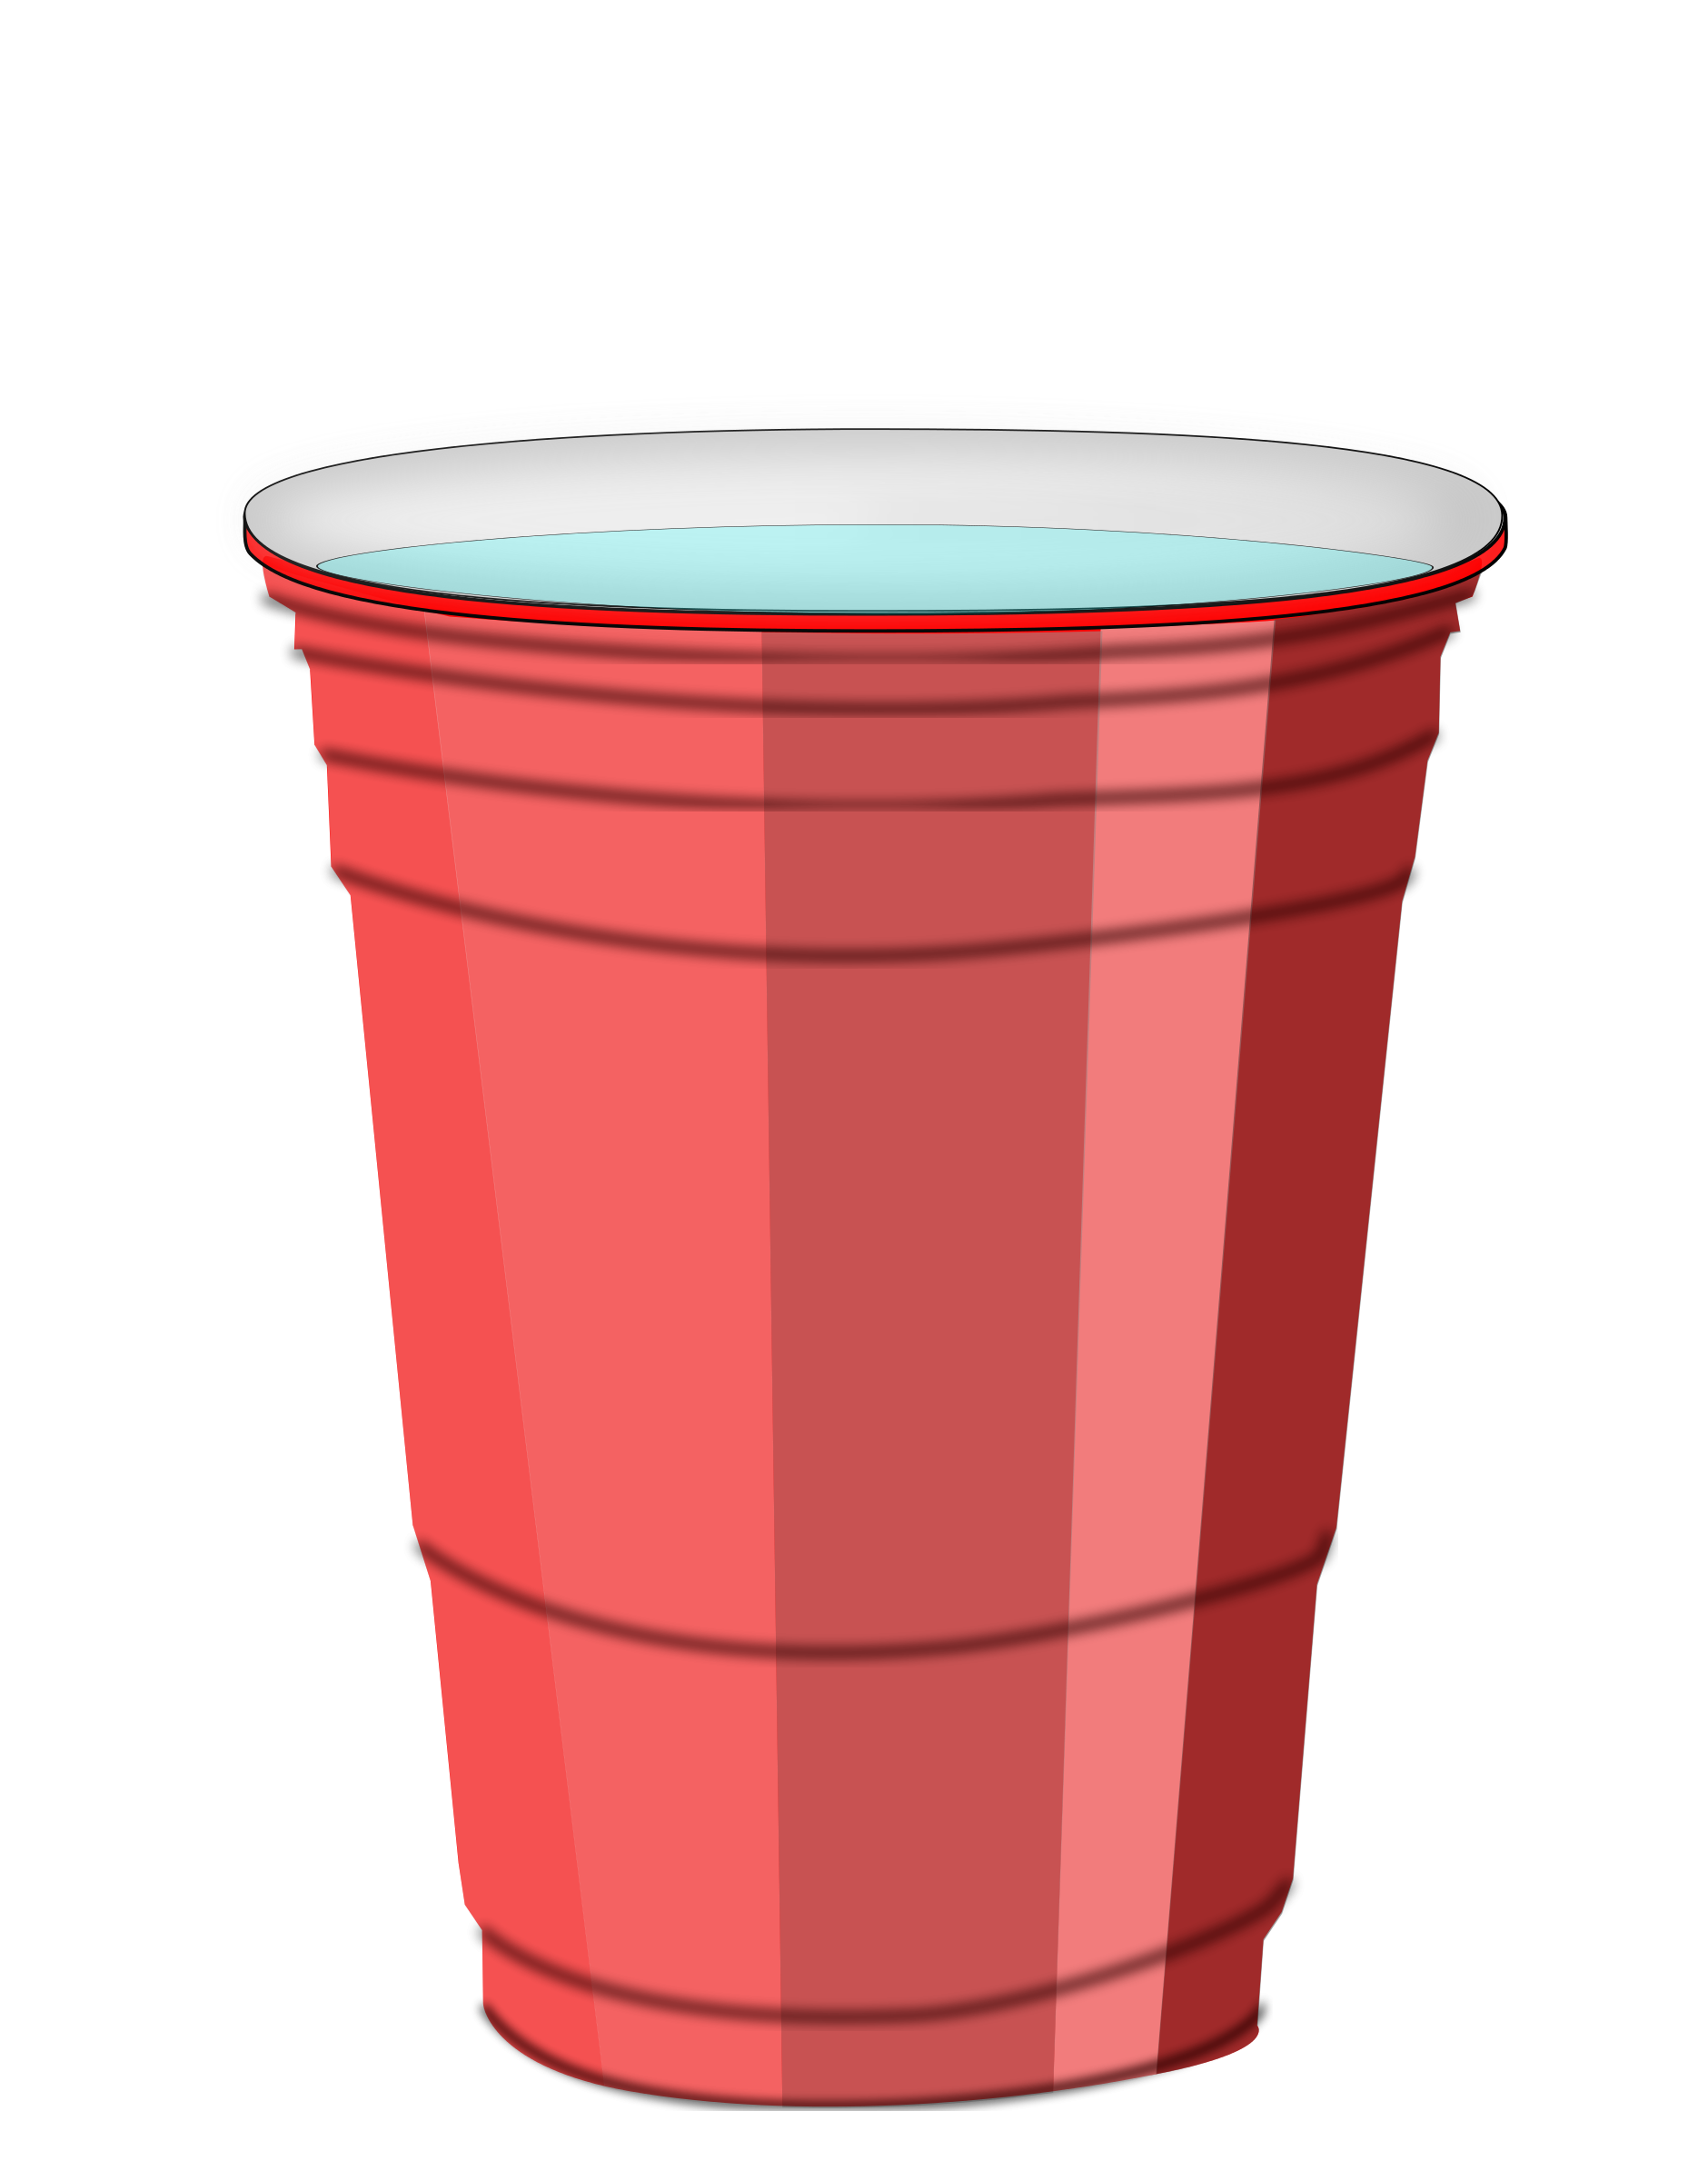 Cups clipart plastics, Cups plastics Transparent FREE for.